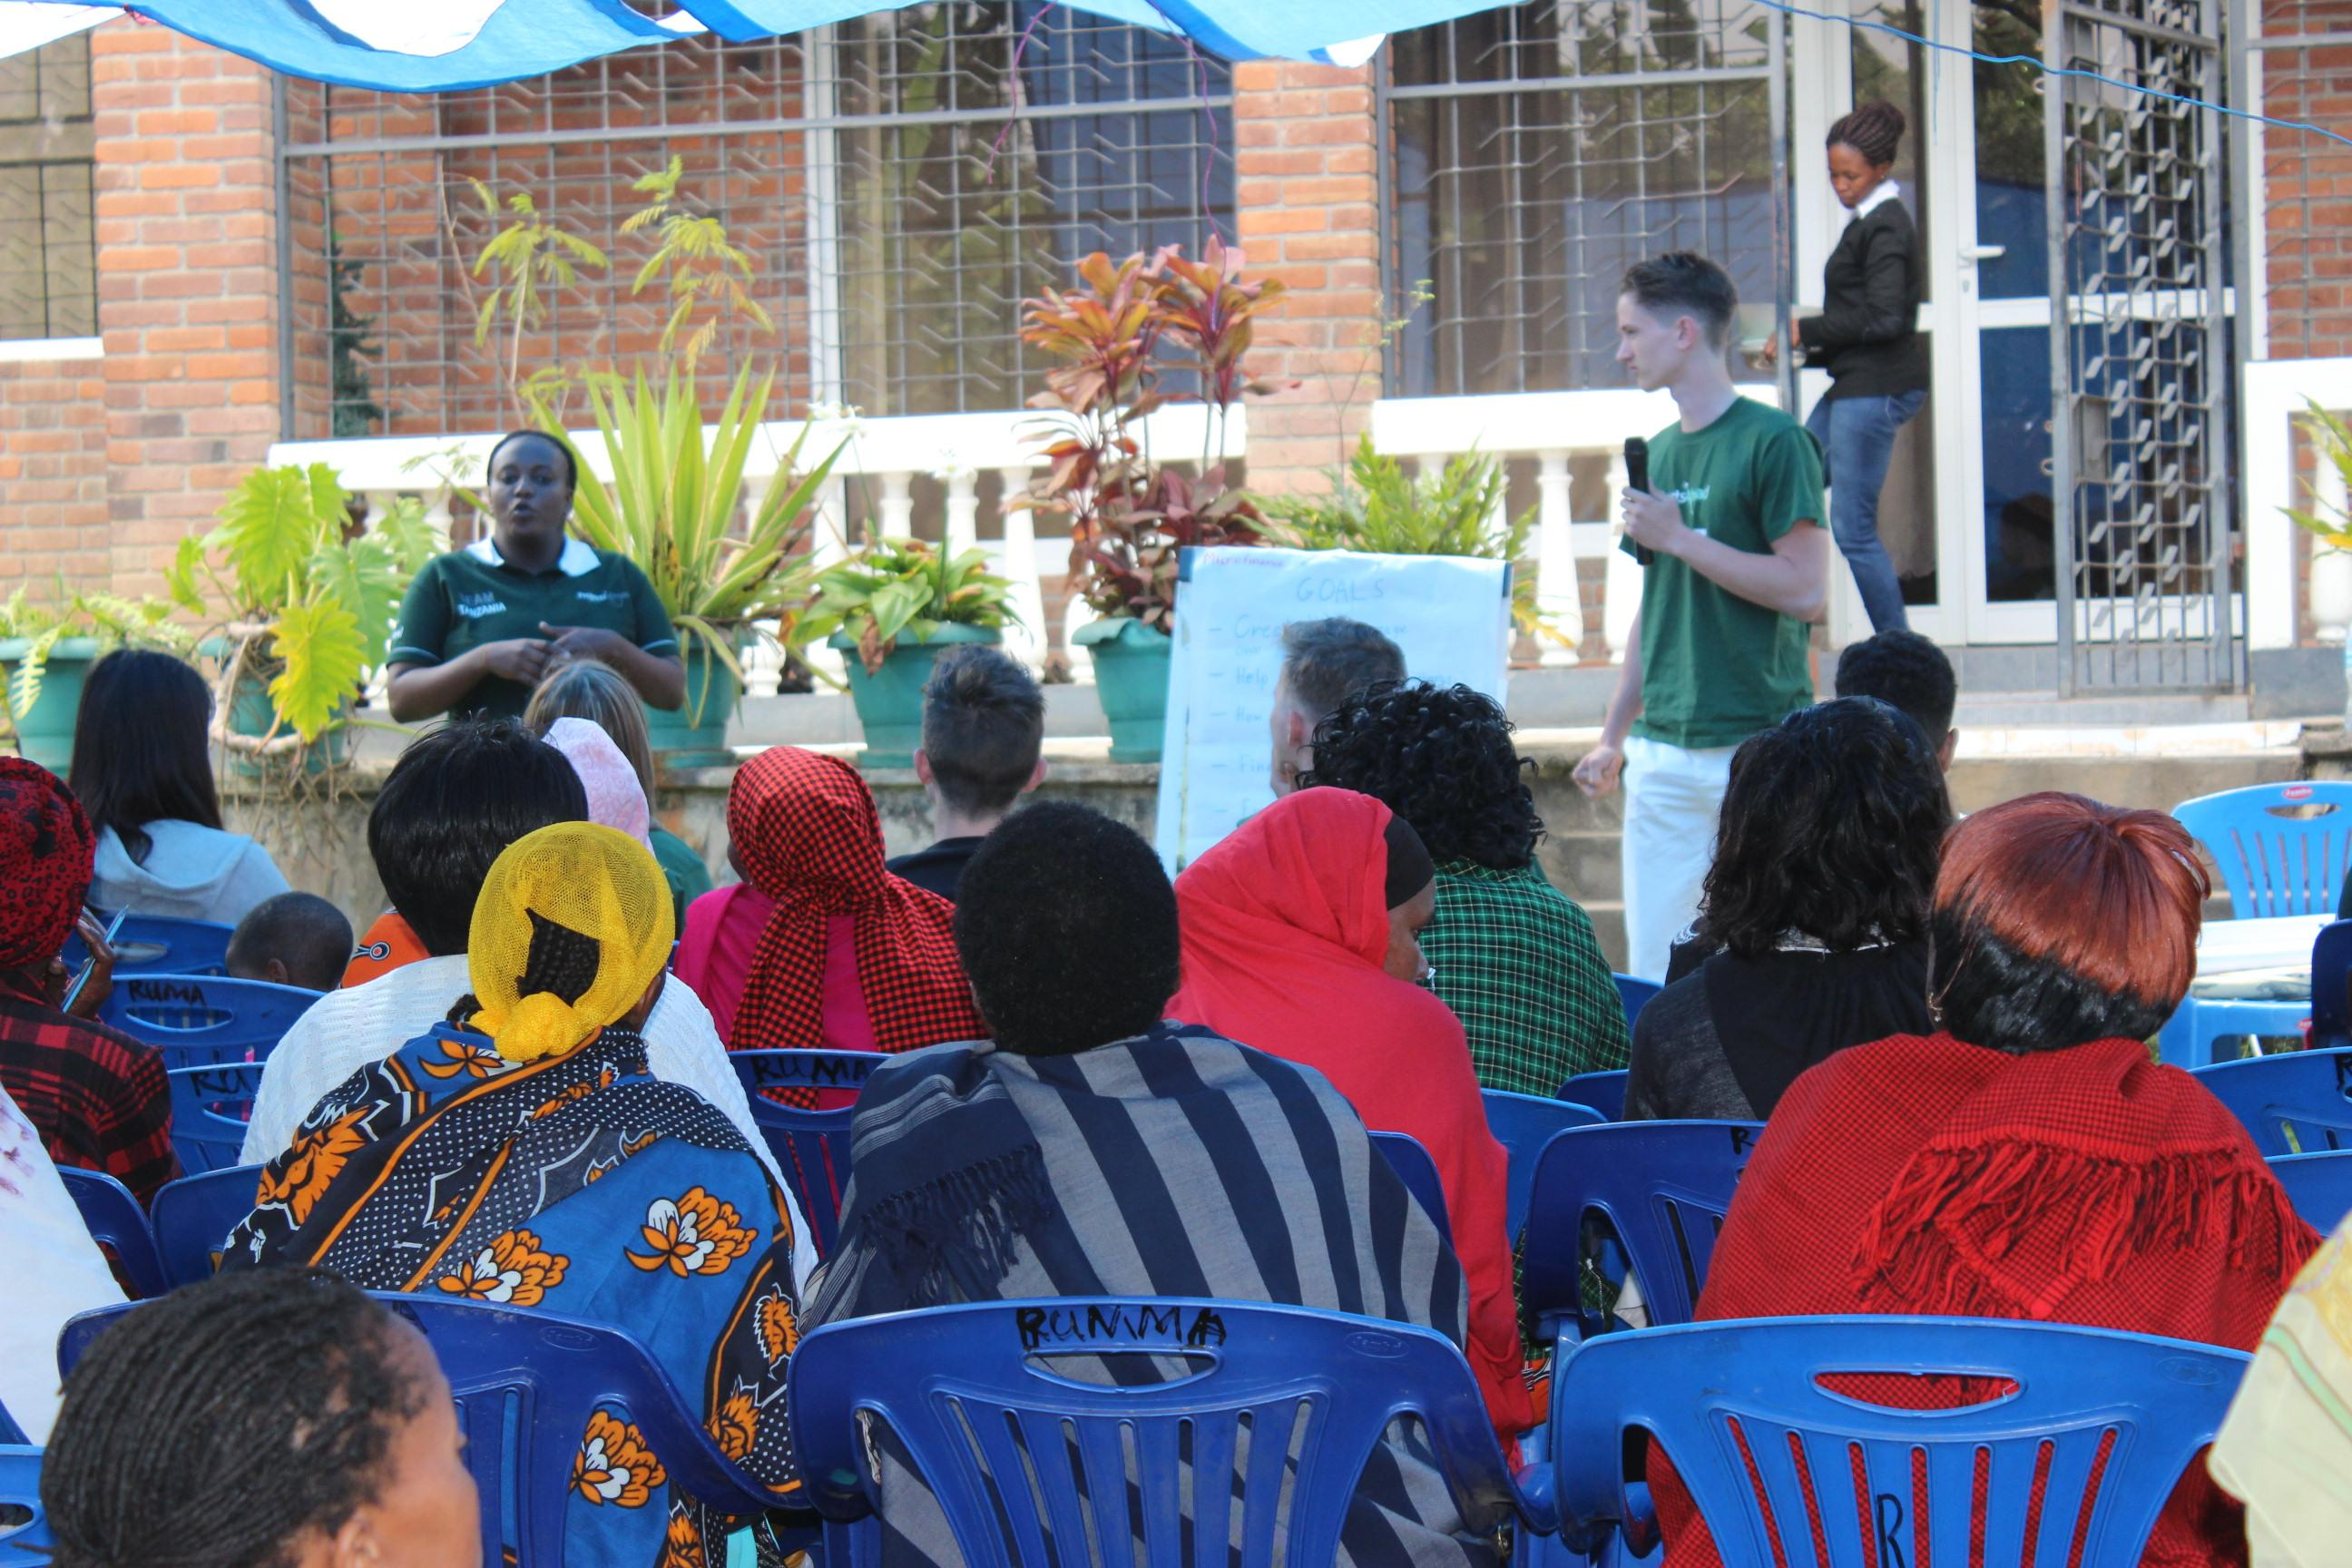 Interns give a presentation to a group of women business owners and gain micro-finance work experience in Tanzania.